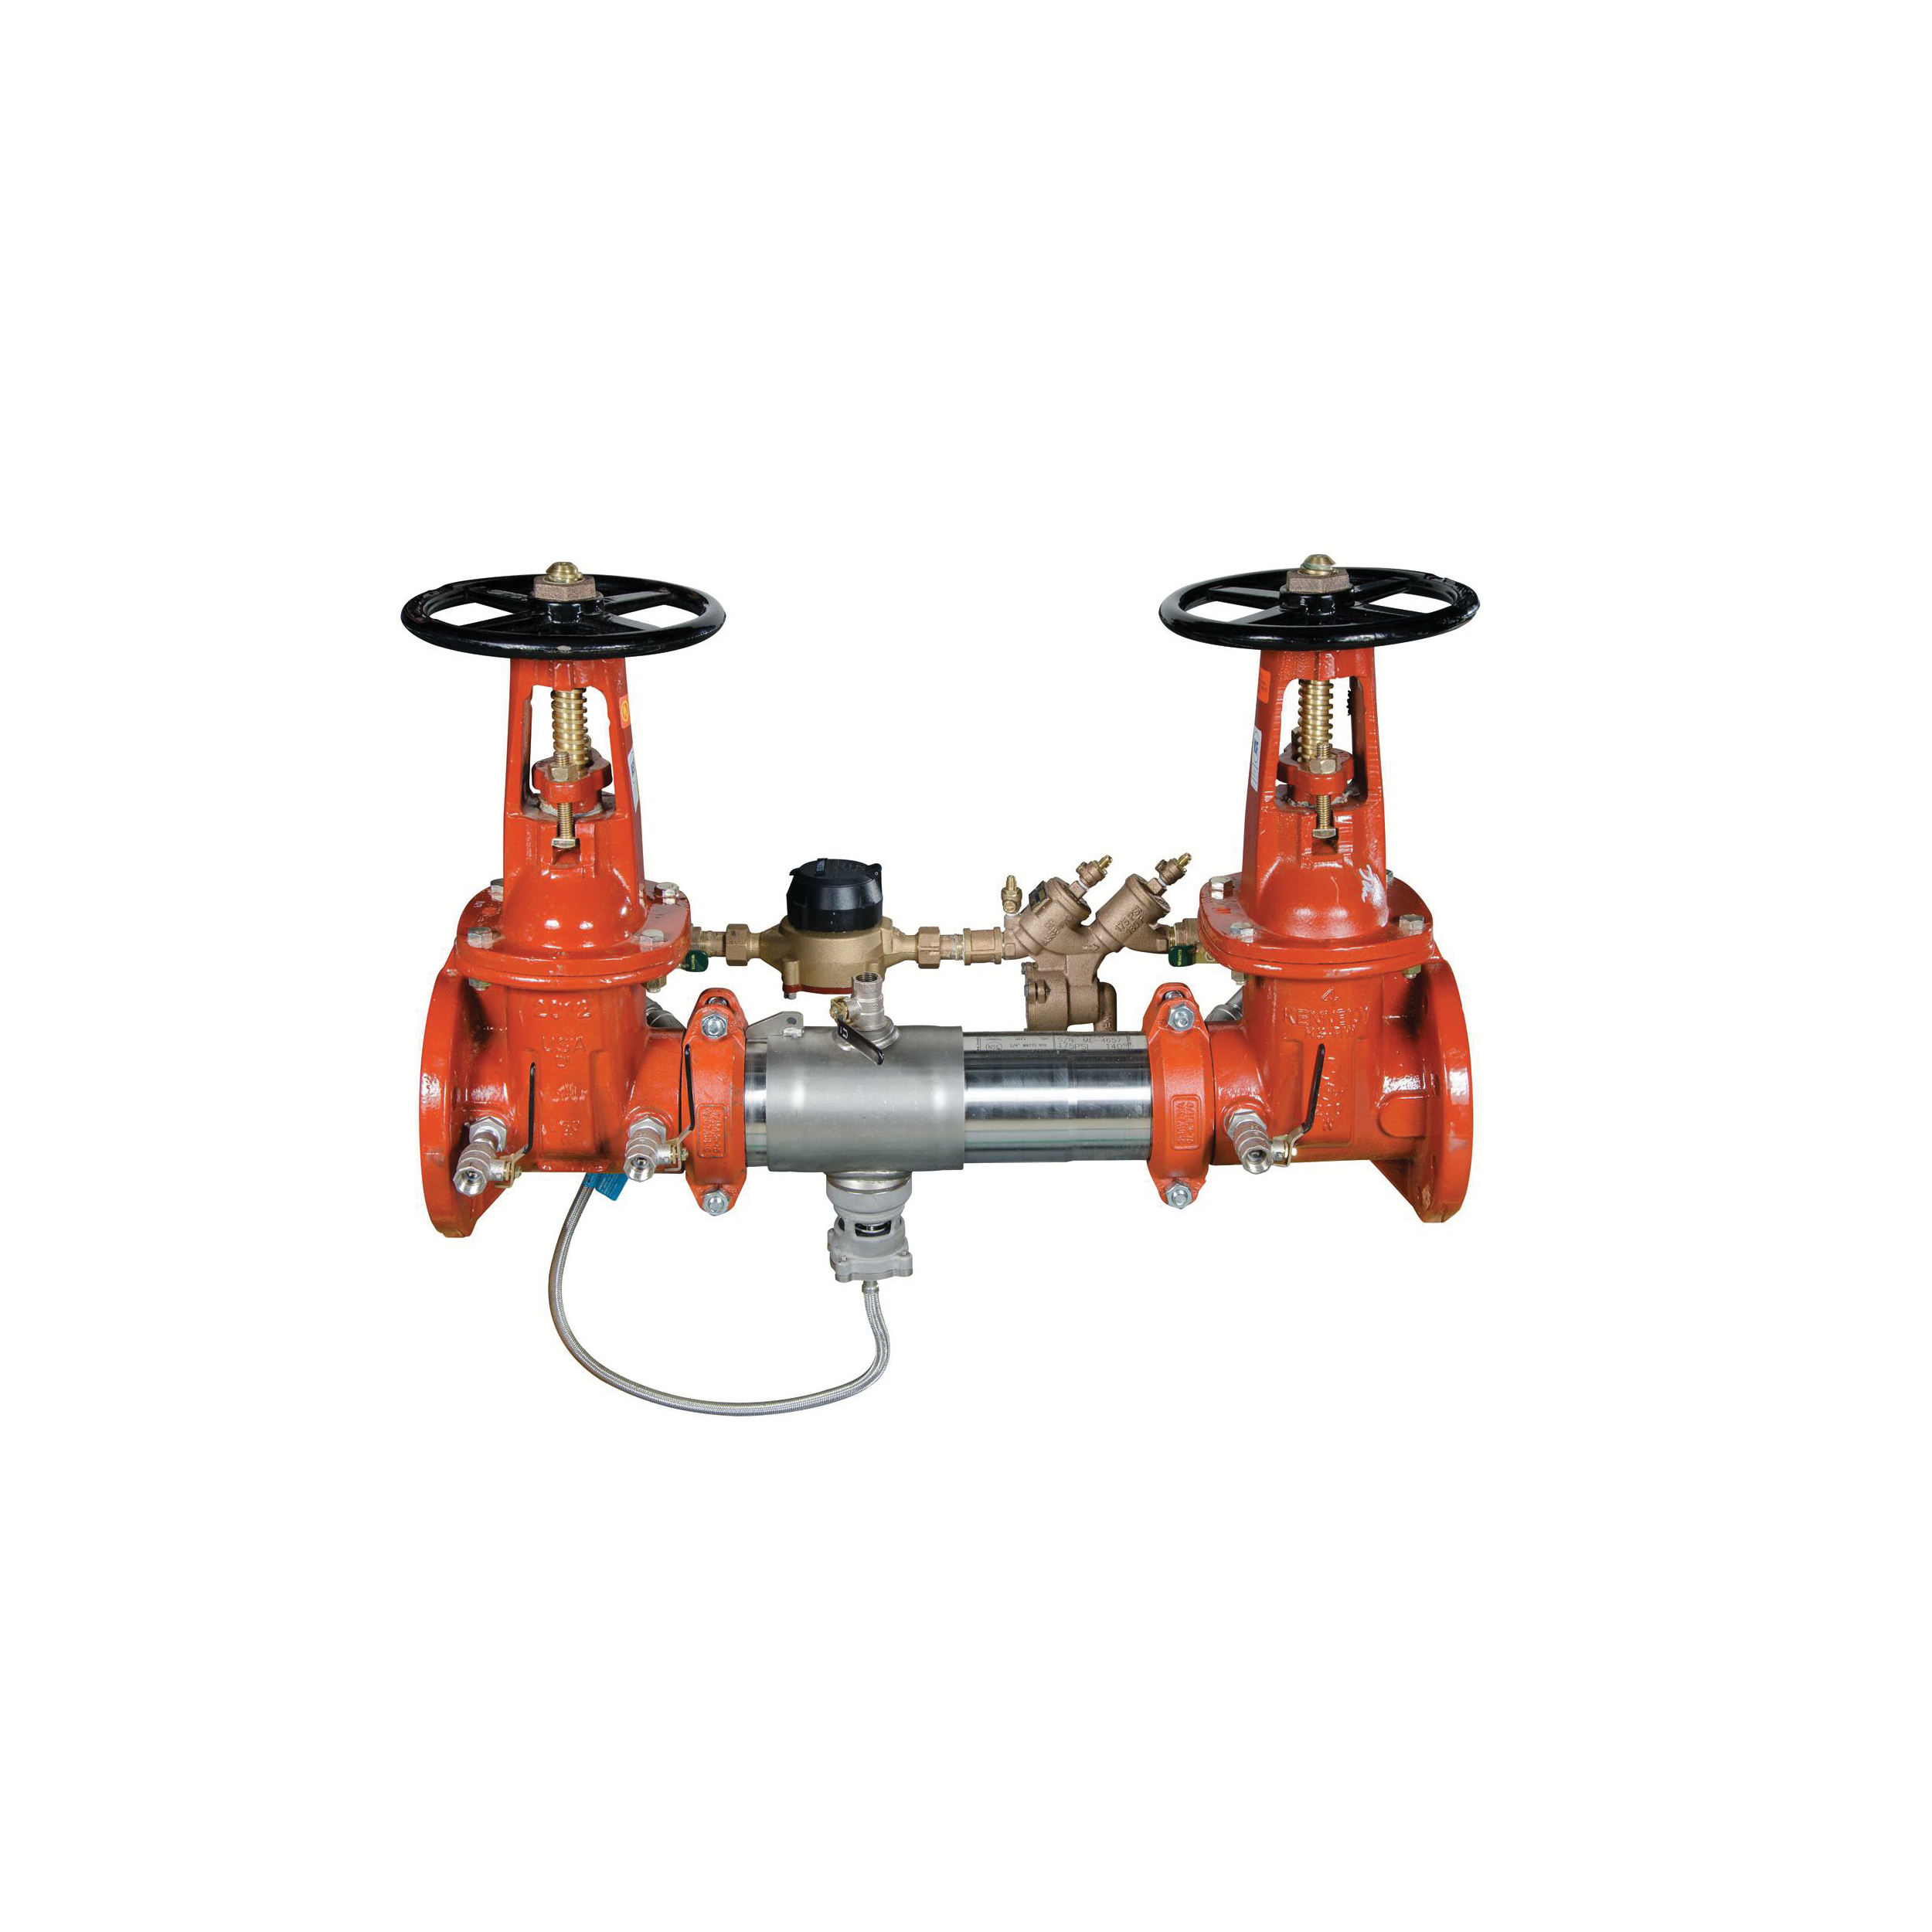 WATTS® 0122720 LF957RPDA Detector Assembly, 3 in, Flange, Resilient Seated Gate Valve, 304 Stainless Steel Body, Reduced Pressure Backflow, 150 lb